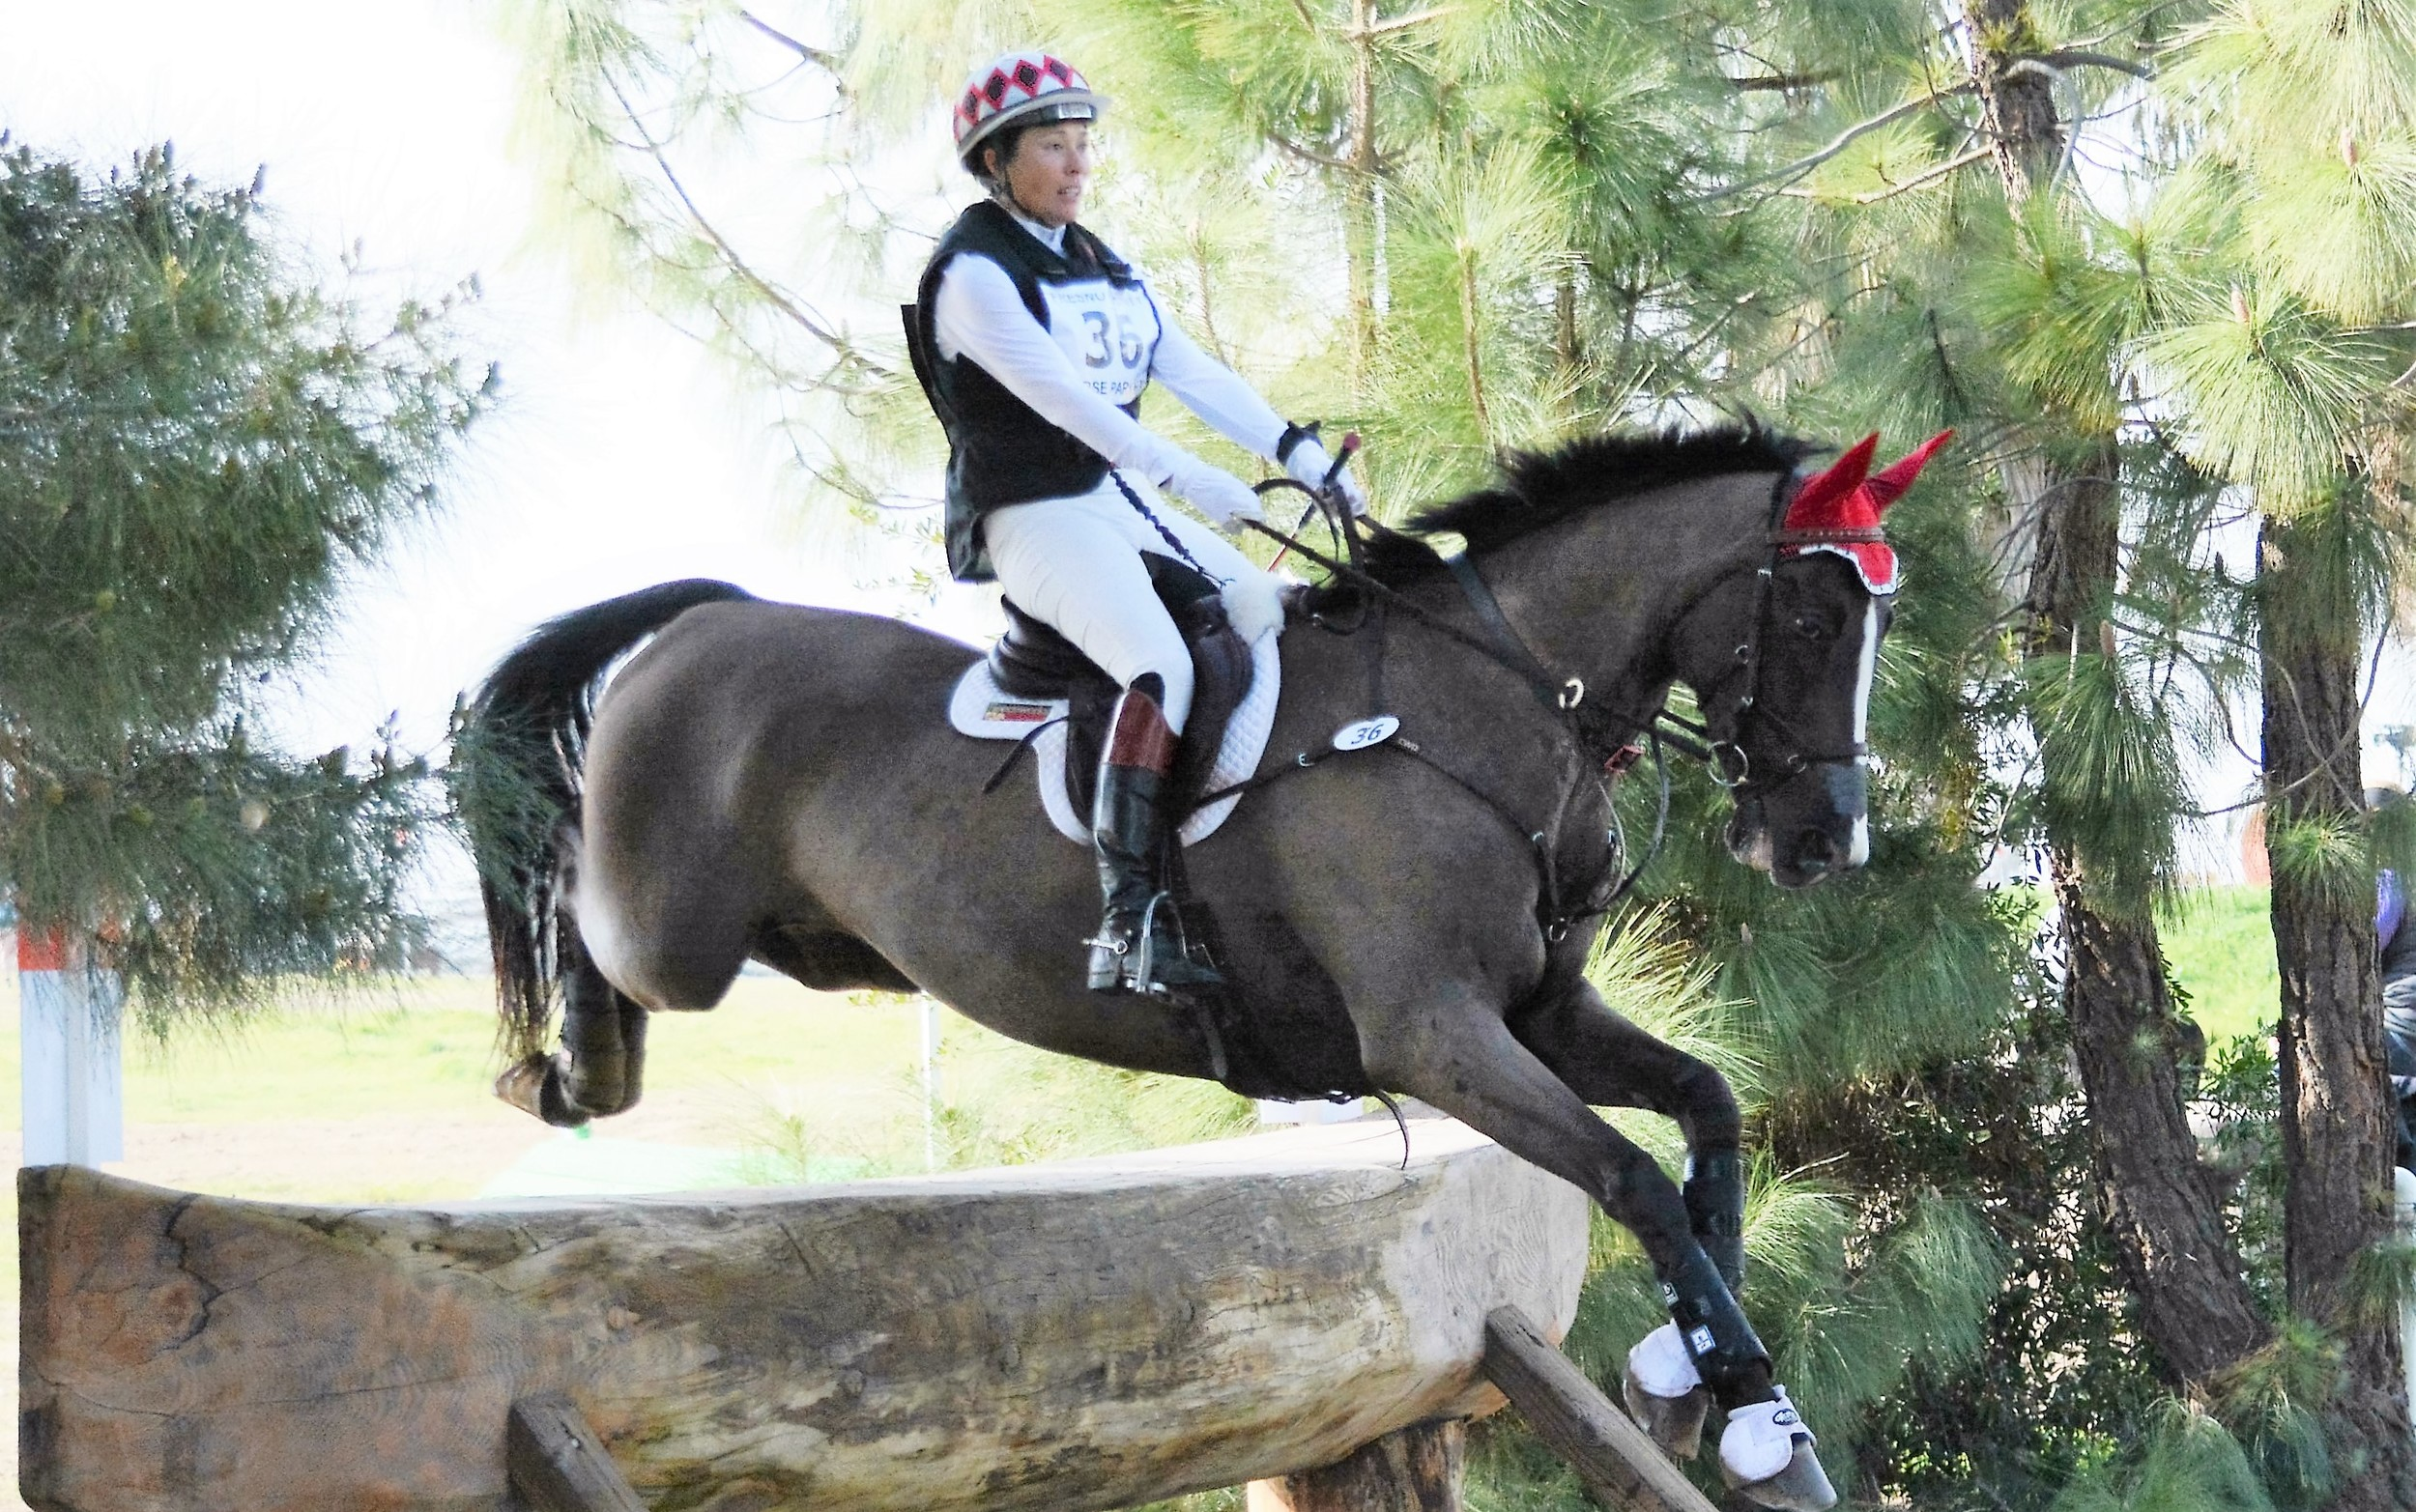 Jennifer McFall and High Times winning their first Advanced Horse Trials of 2016 at Fresno County Horse Park CIC and Horse Trials in February.